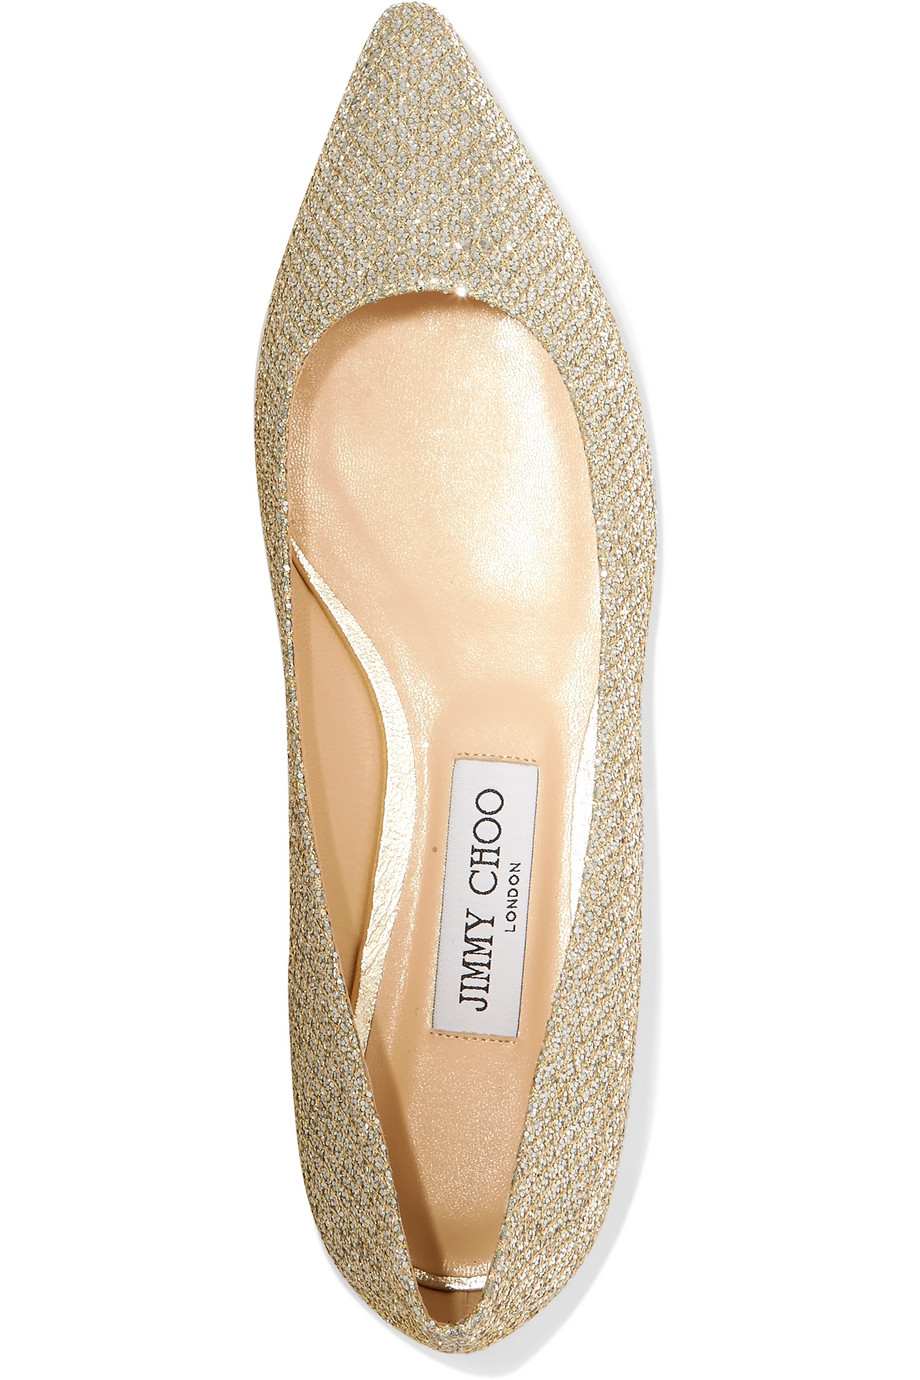 Ballet Jimmy Choo buy Ballet Jimmy Choo internet shop